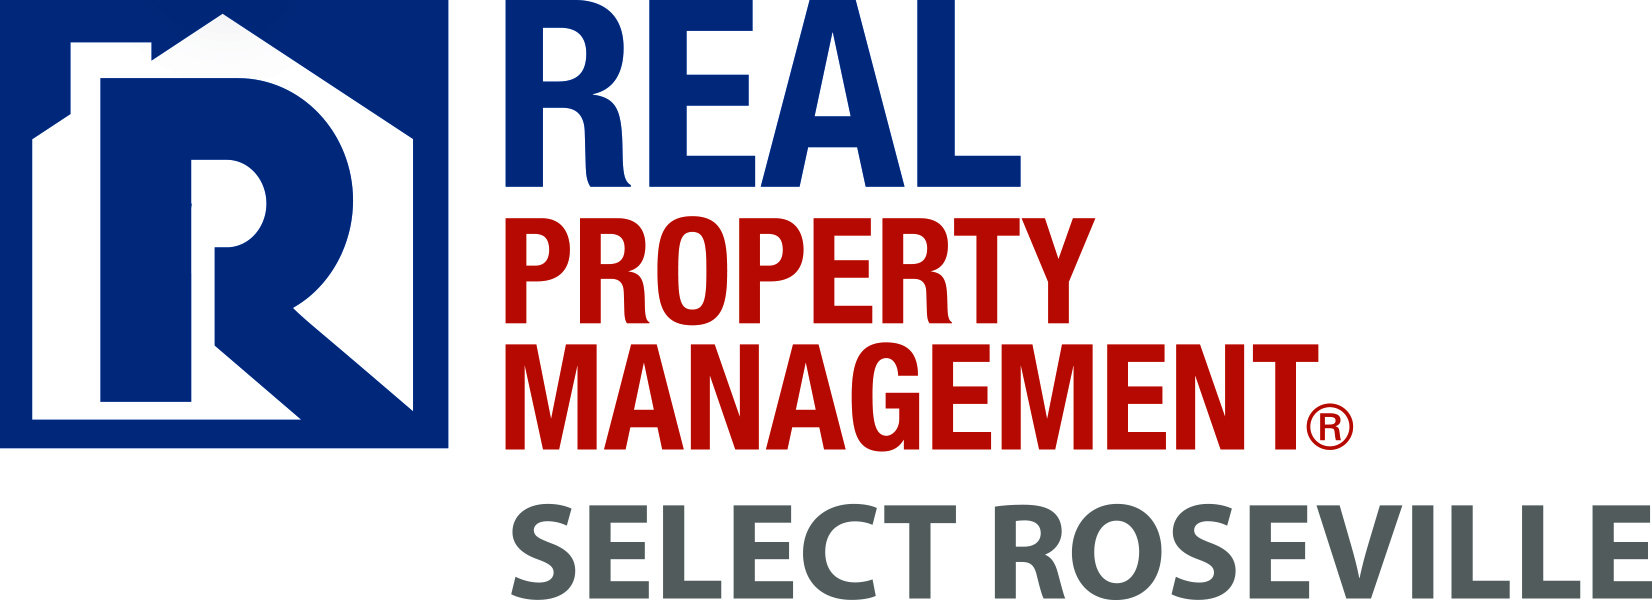 >Real Property Management Select Roseville